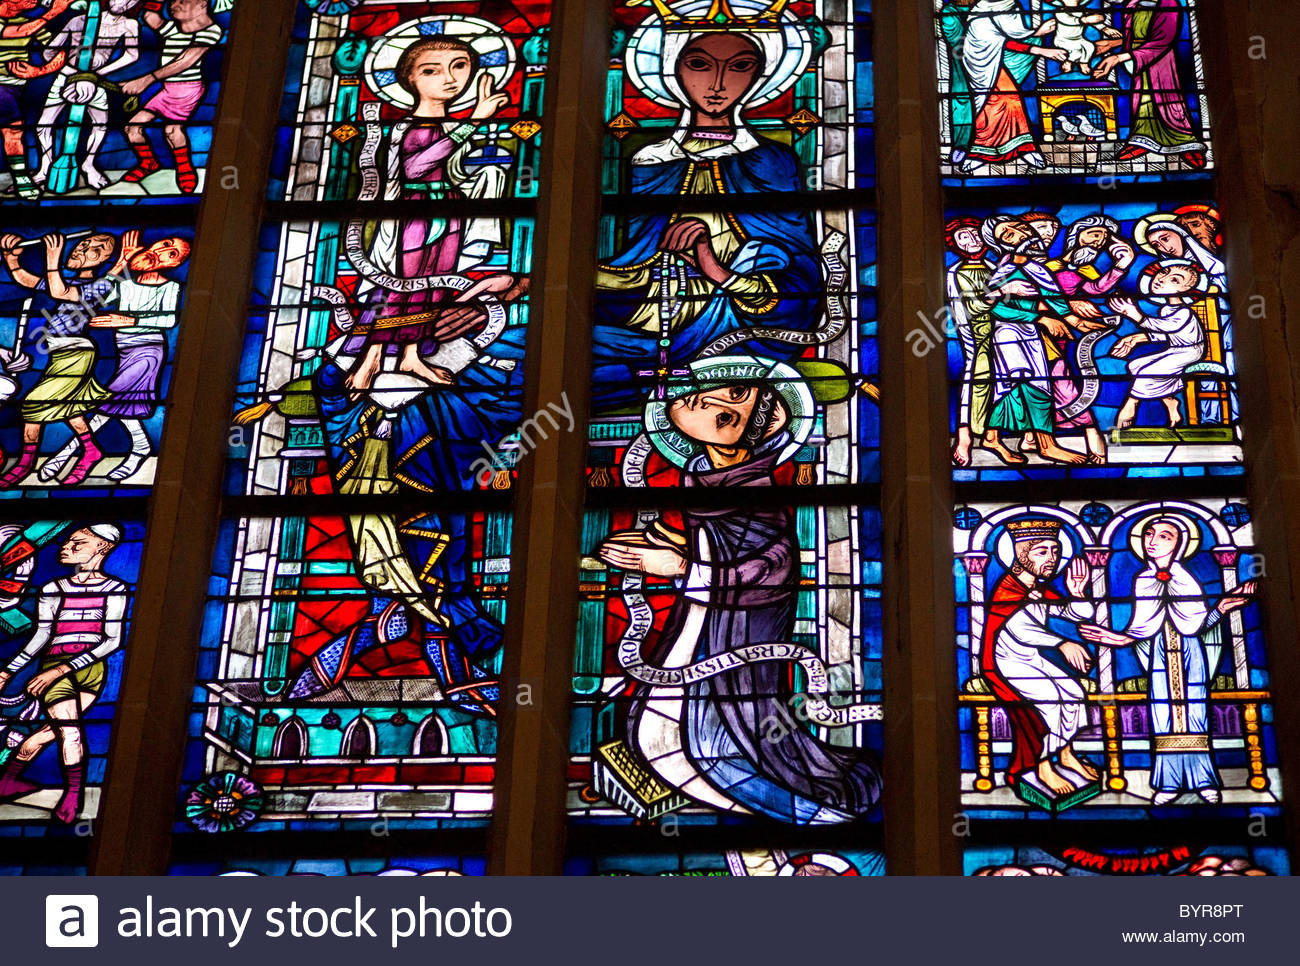 Stained glass windows inside a church – Munich Germany - Stock Image